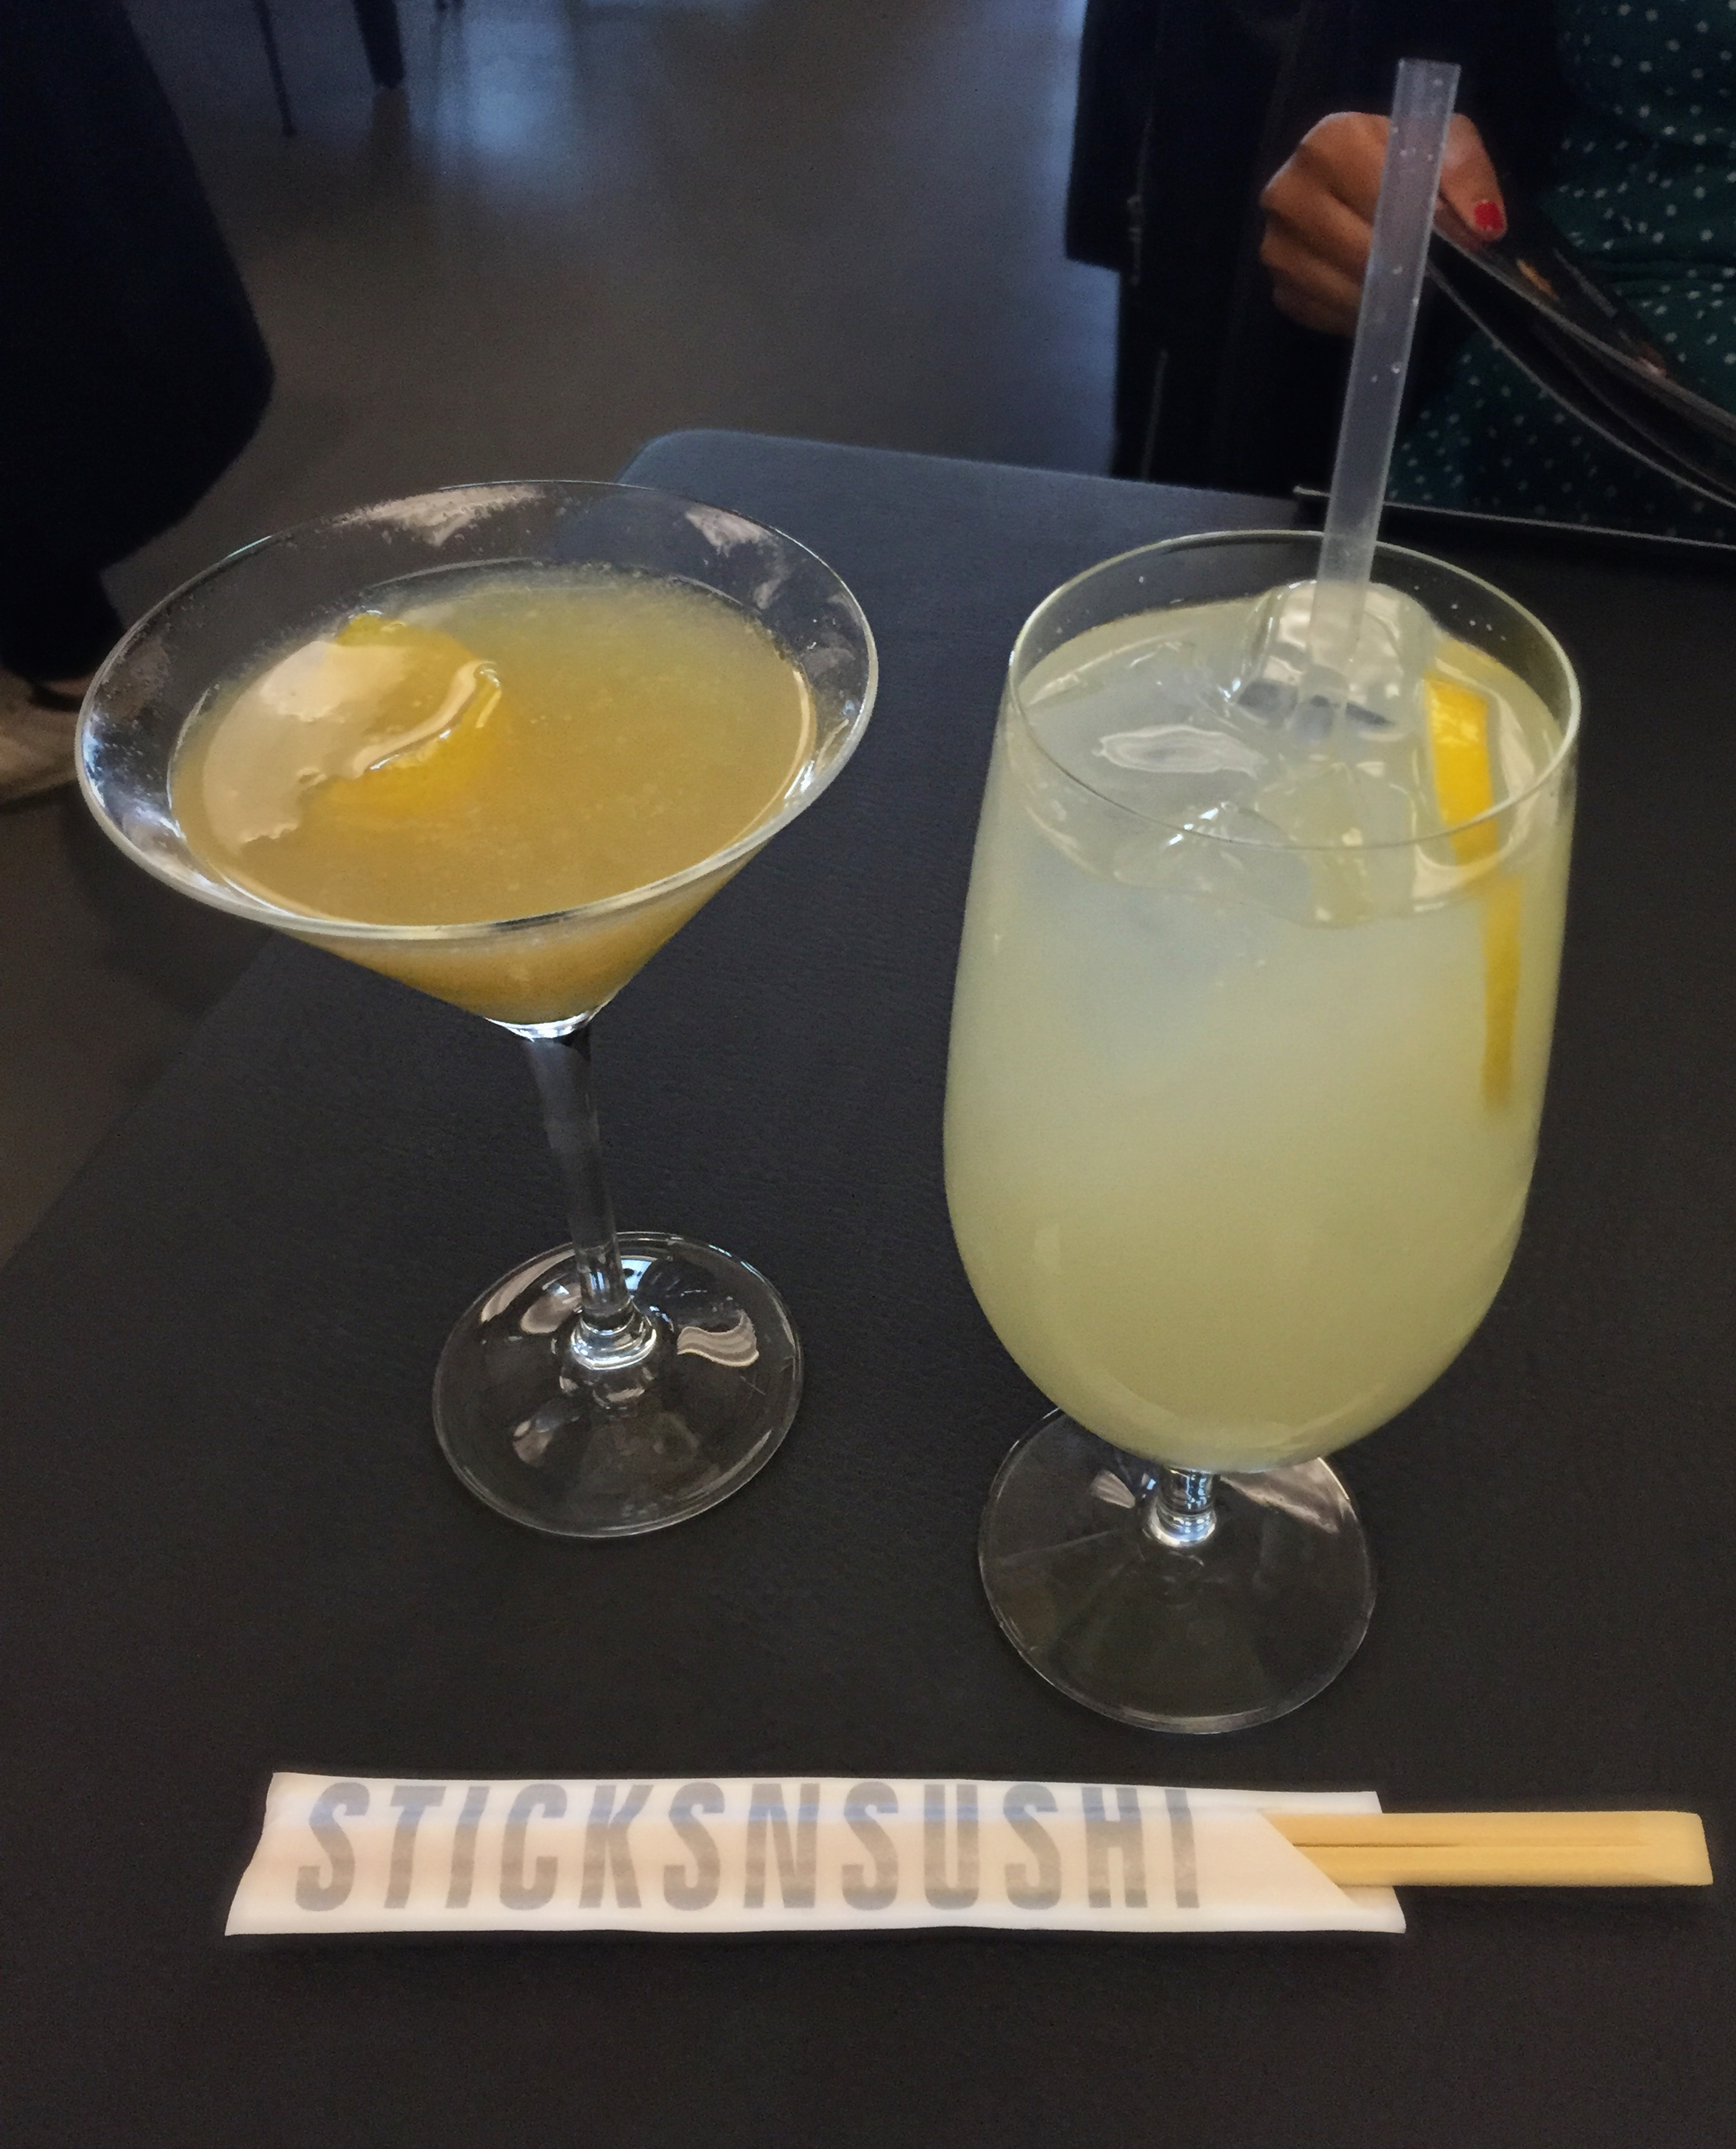 STICKS'N'SUSHI | CANARY WHARF | WE LOVE FOOD, IT'S ALL WE EAT